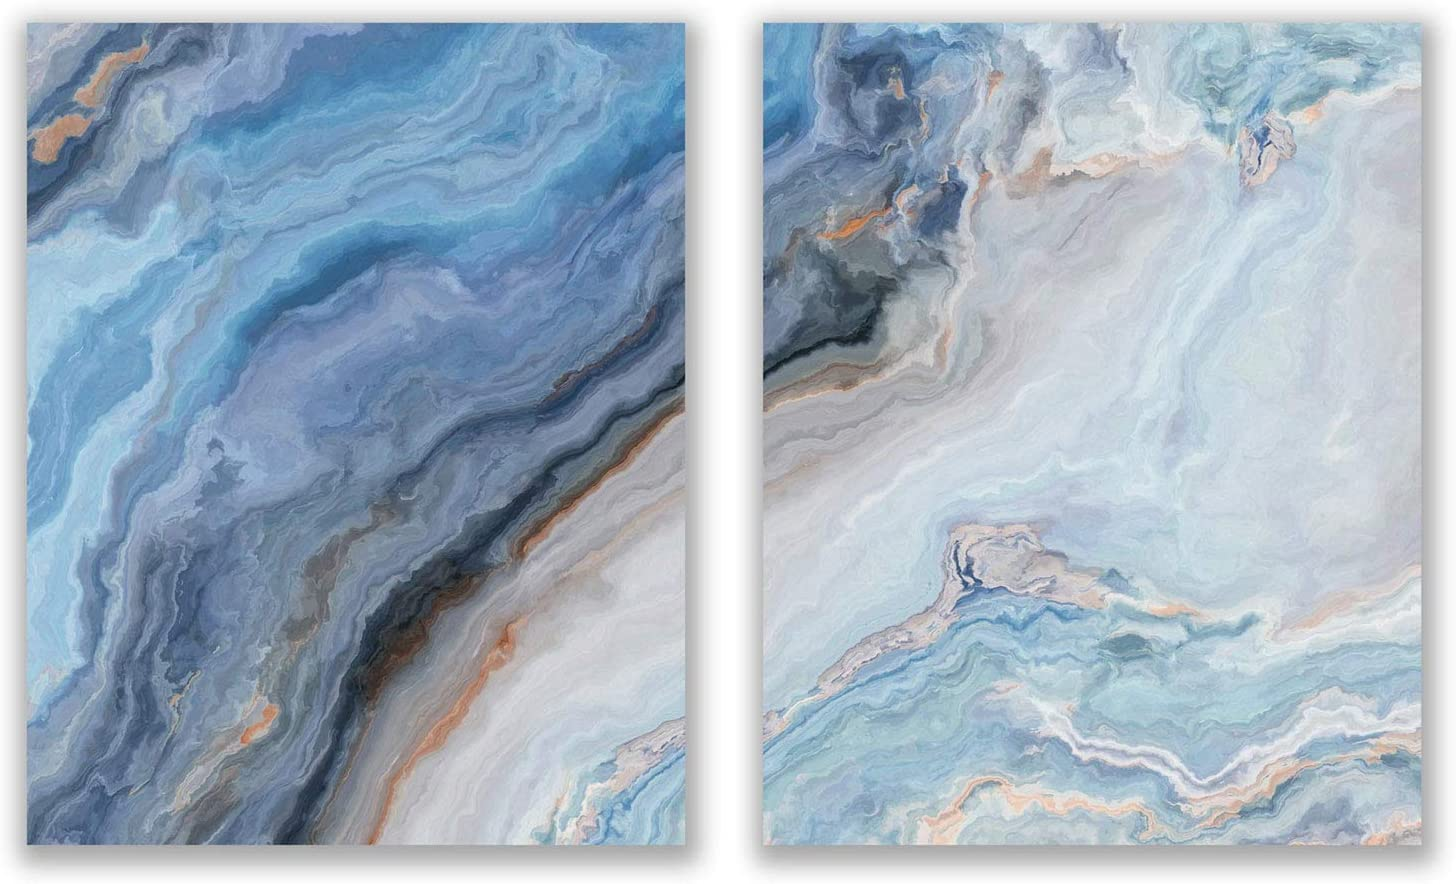 Blue Agate Prints - Set of 2 (8x10) Unframed Glossy Modern Abstract Geode Gold Marble Wall Art Decor